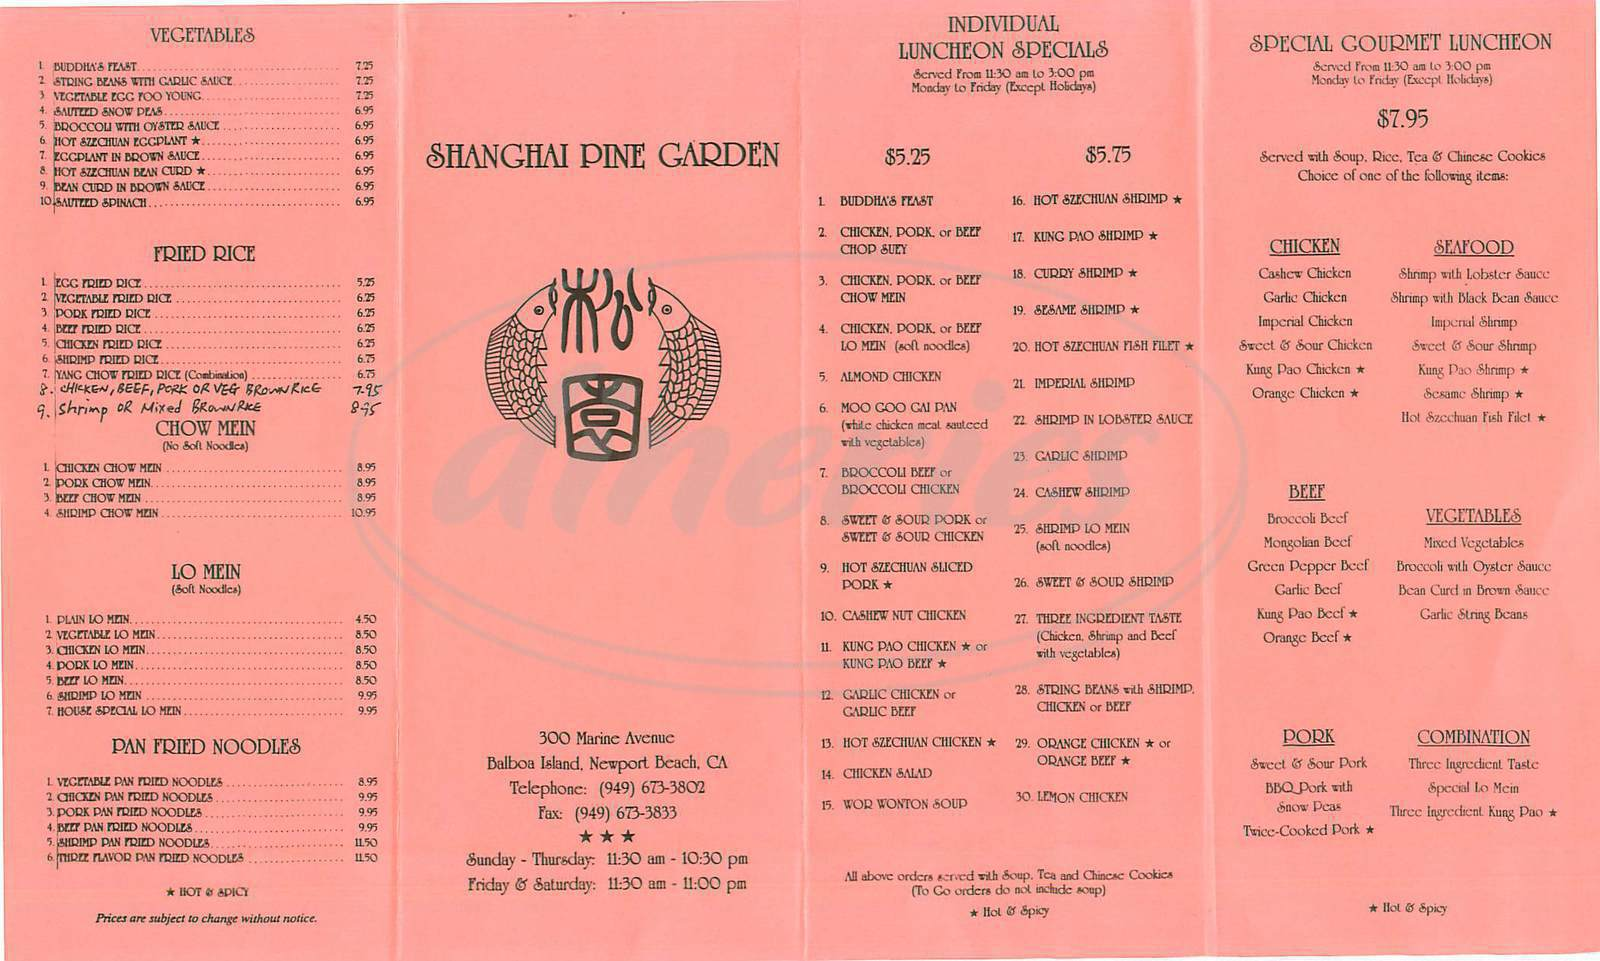 menu for Shanghai Pine Garden